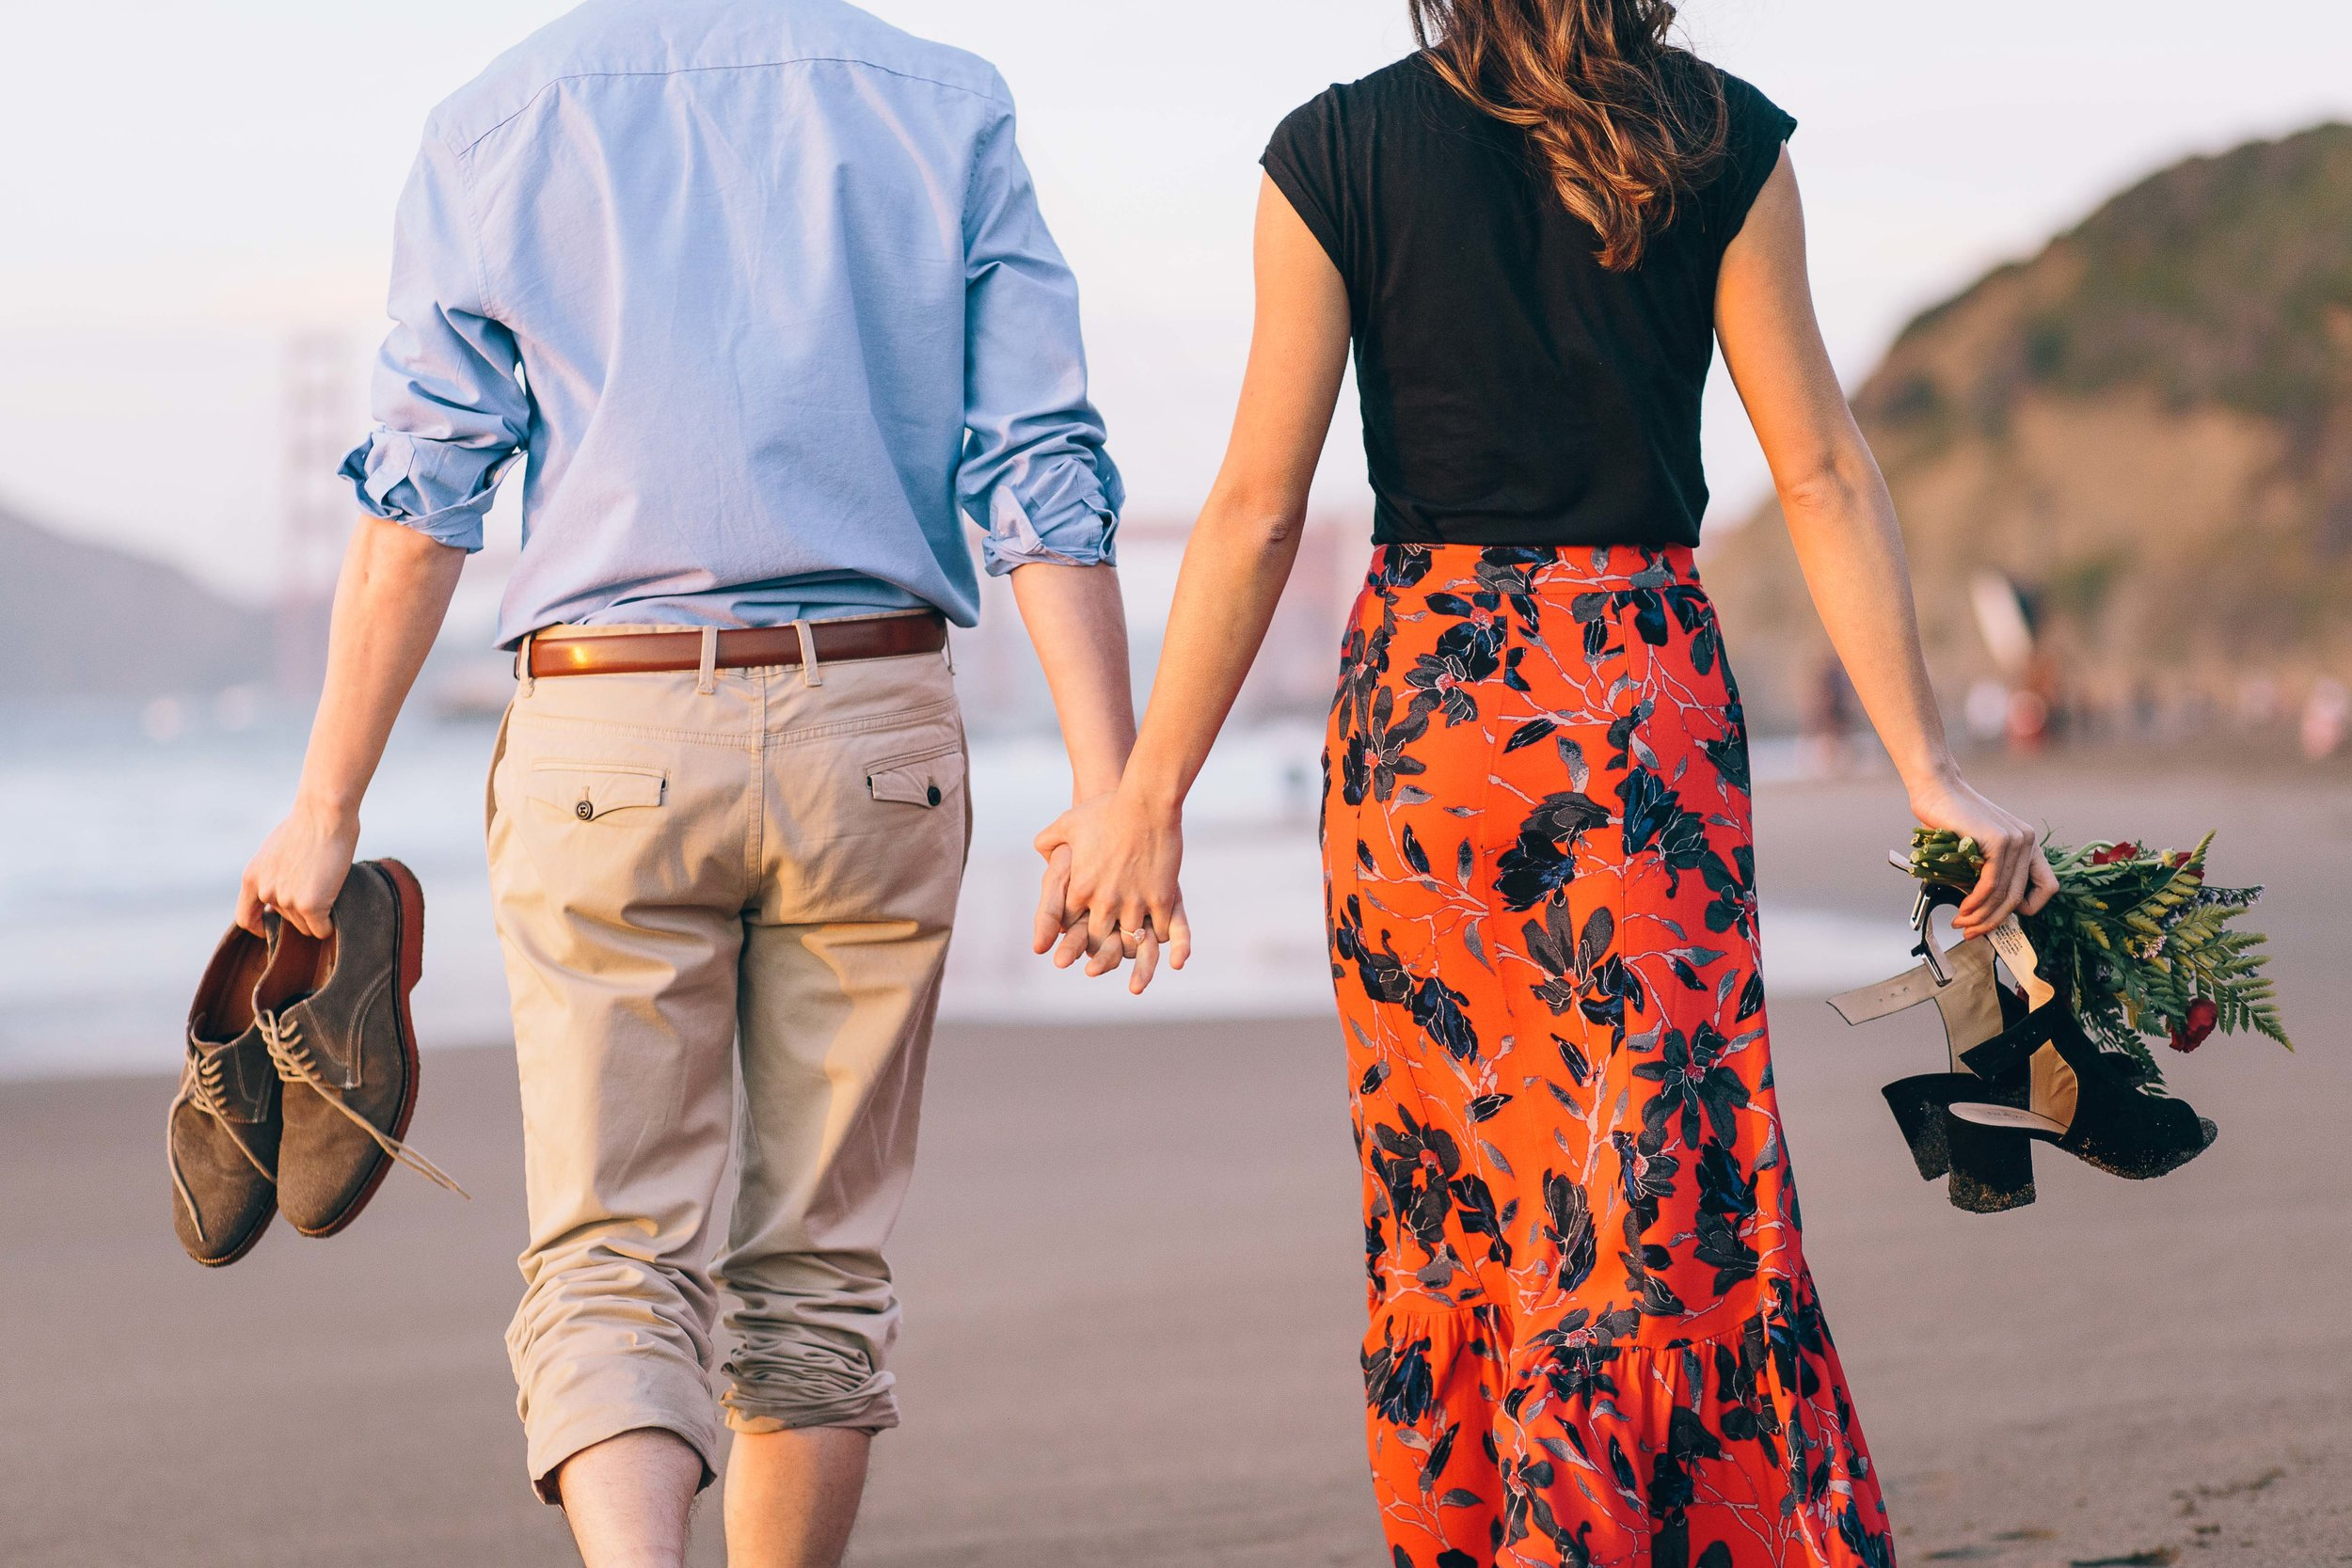 Best Engagement Photo Locations in San Francisco - Baker Beach Engagement Photos by JBJ Pictures (1).jpg